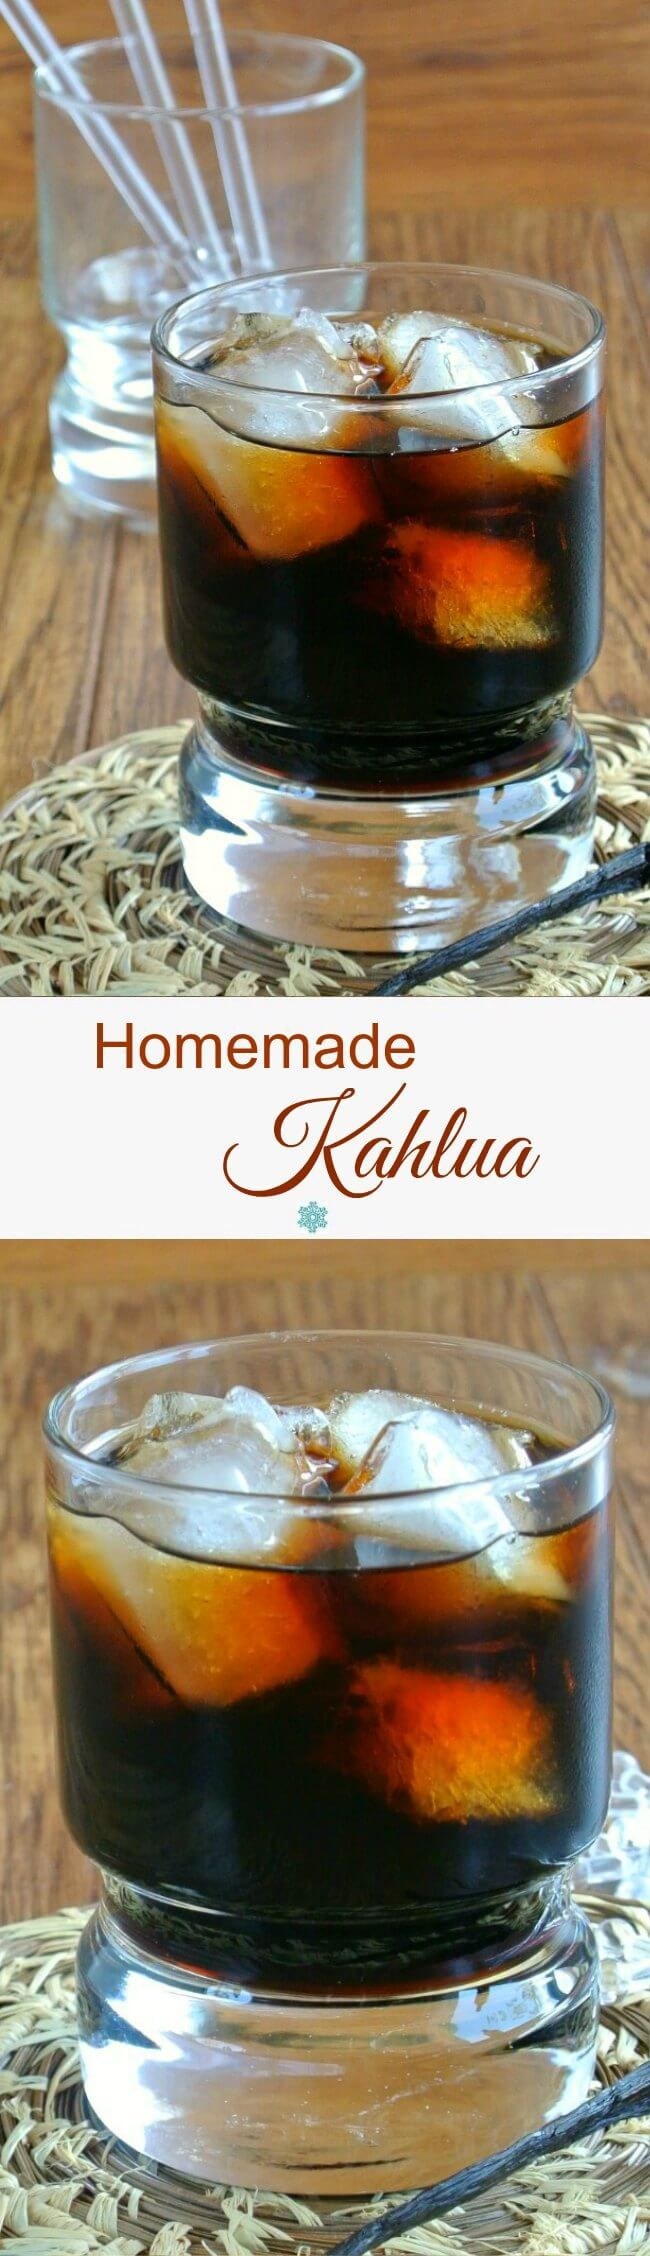 Homemade Kahlua has a perfect balance of sweetness that is shared with coffee and rum. Only 4 ingredients and doesn't it sound good? Aged for 2 to 3 weeks.